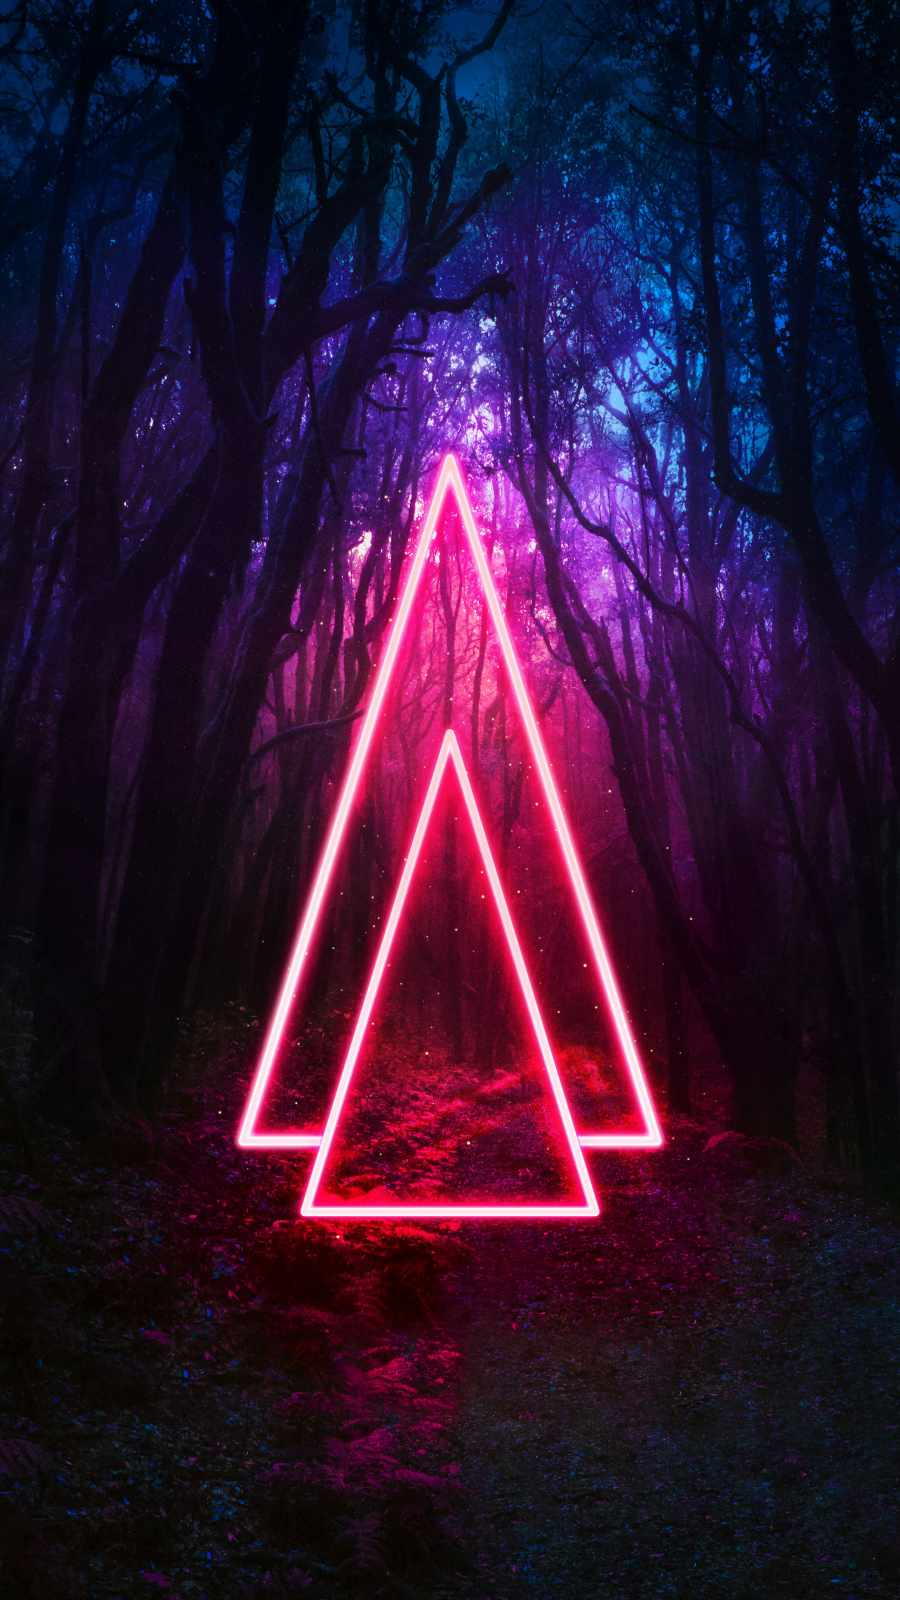 Neon Triangle in Forest